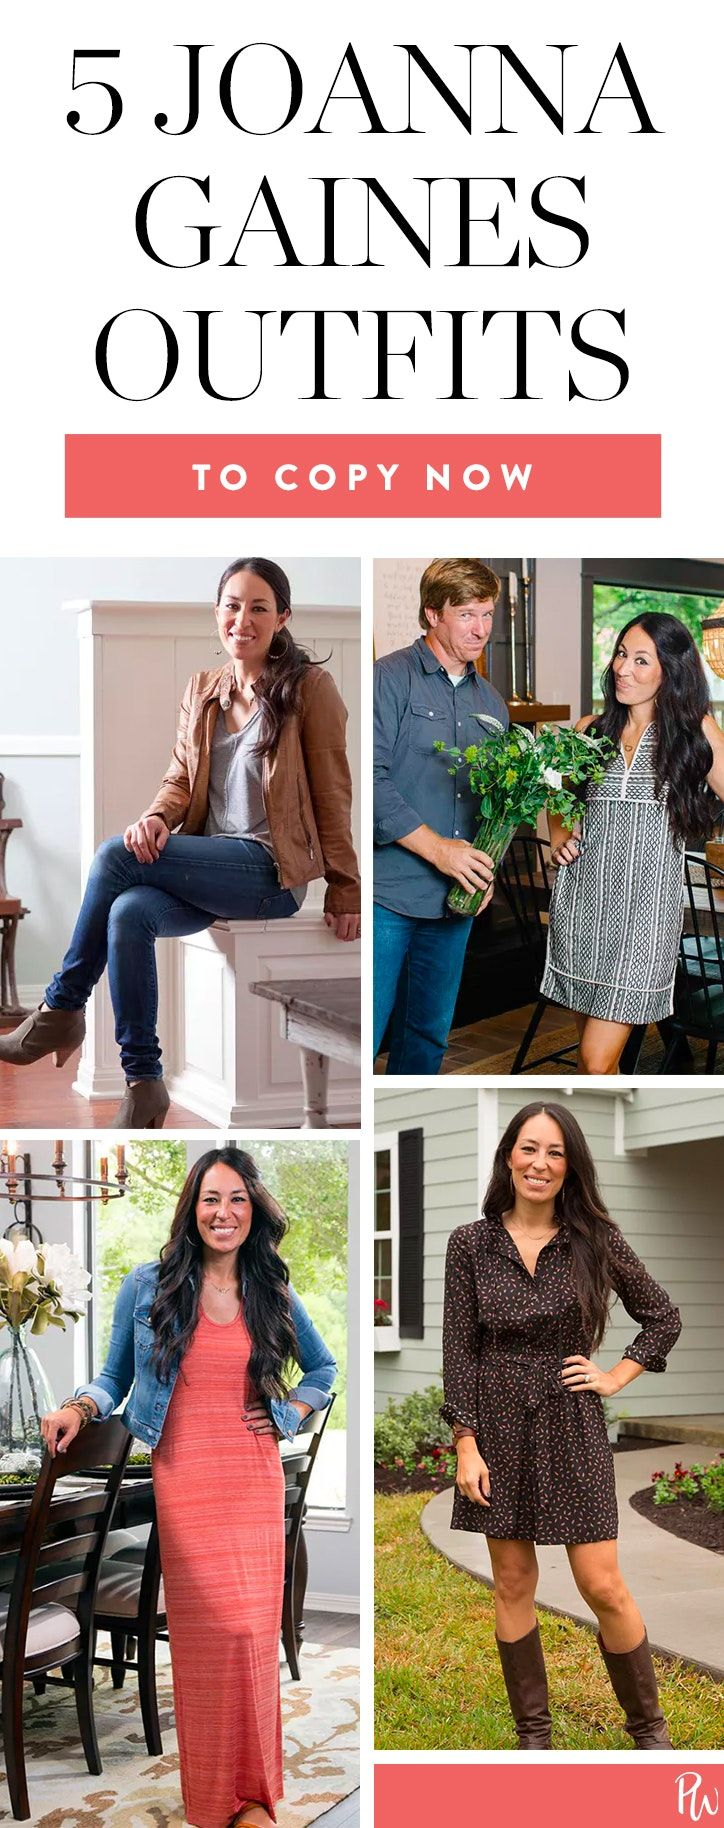 5 Joanna Gaines Outfits That Are So Easy to Copy